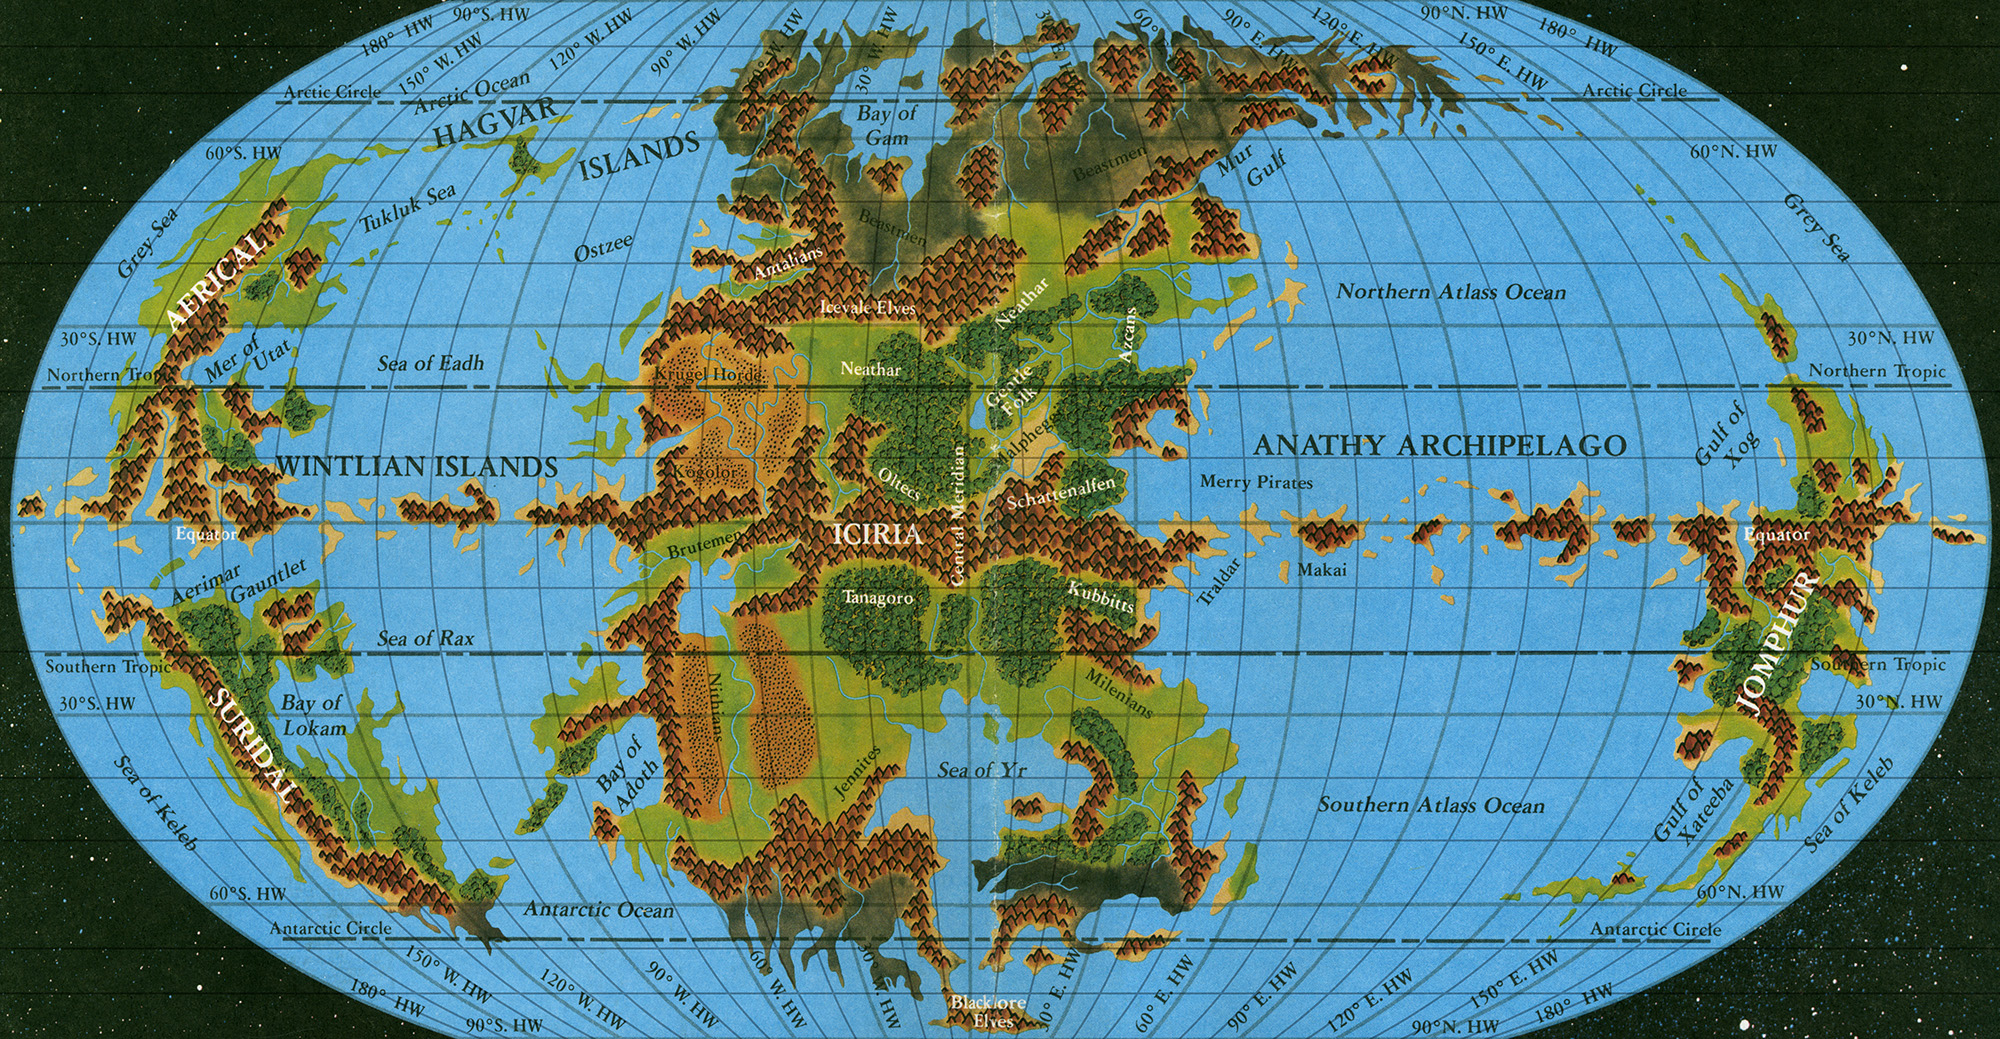 2016 page 3 thorfinn tait cartography the hollow world set hollow world map with extra graticule lines added gumiabroncs Image collections